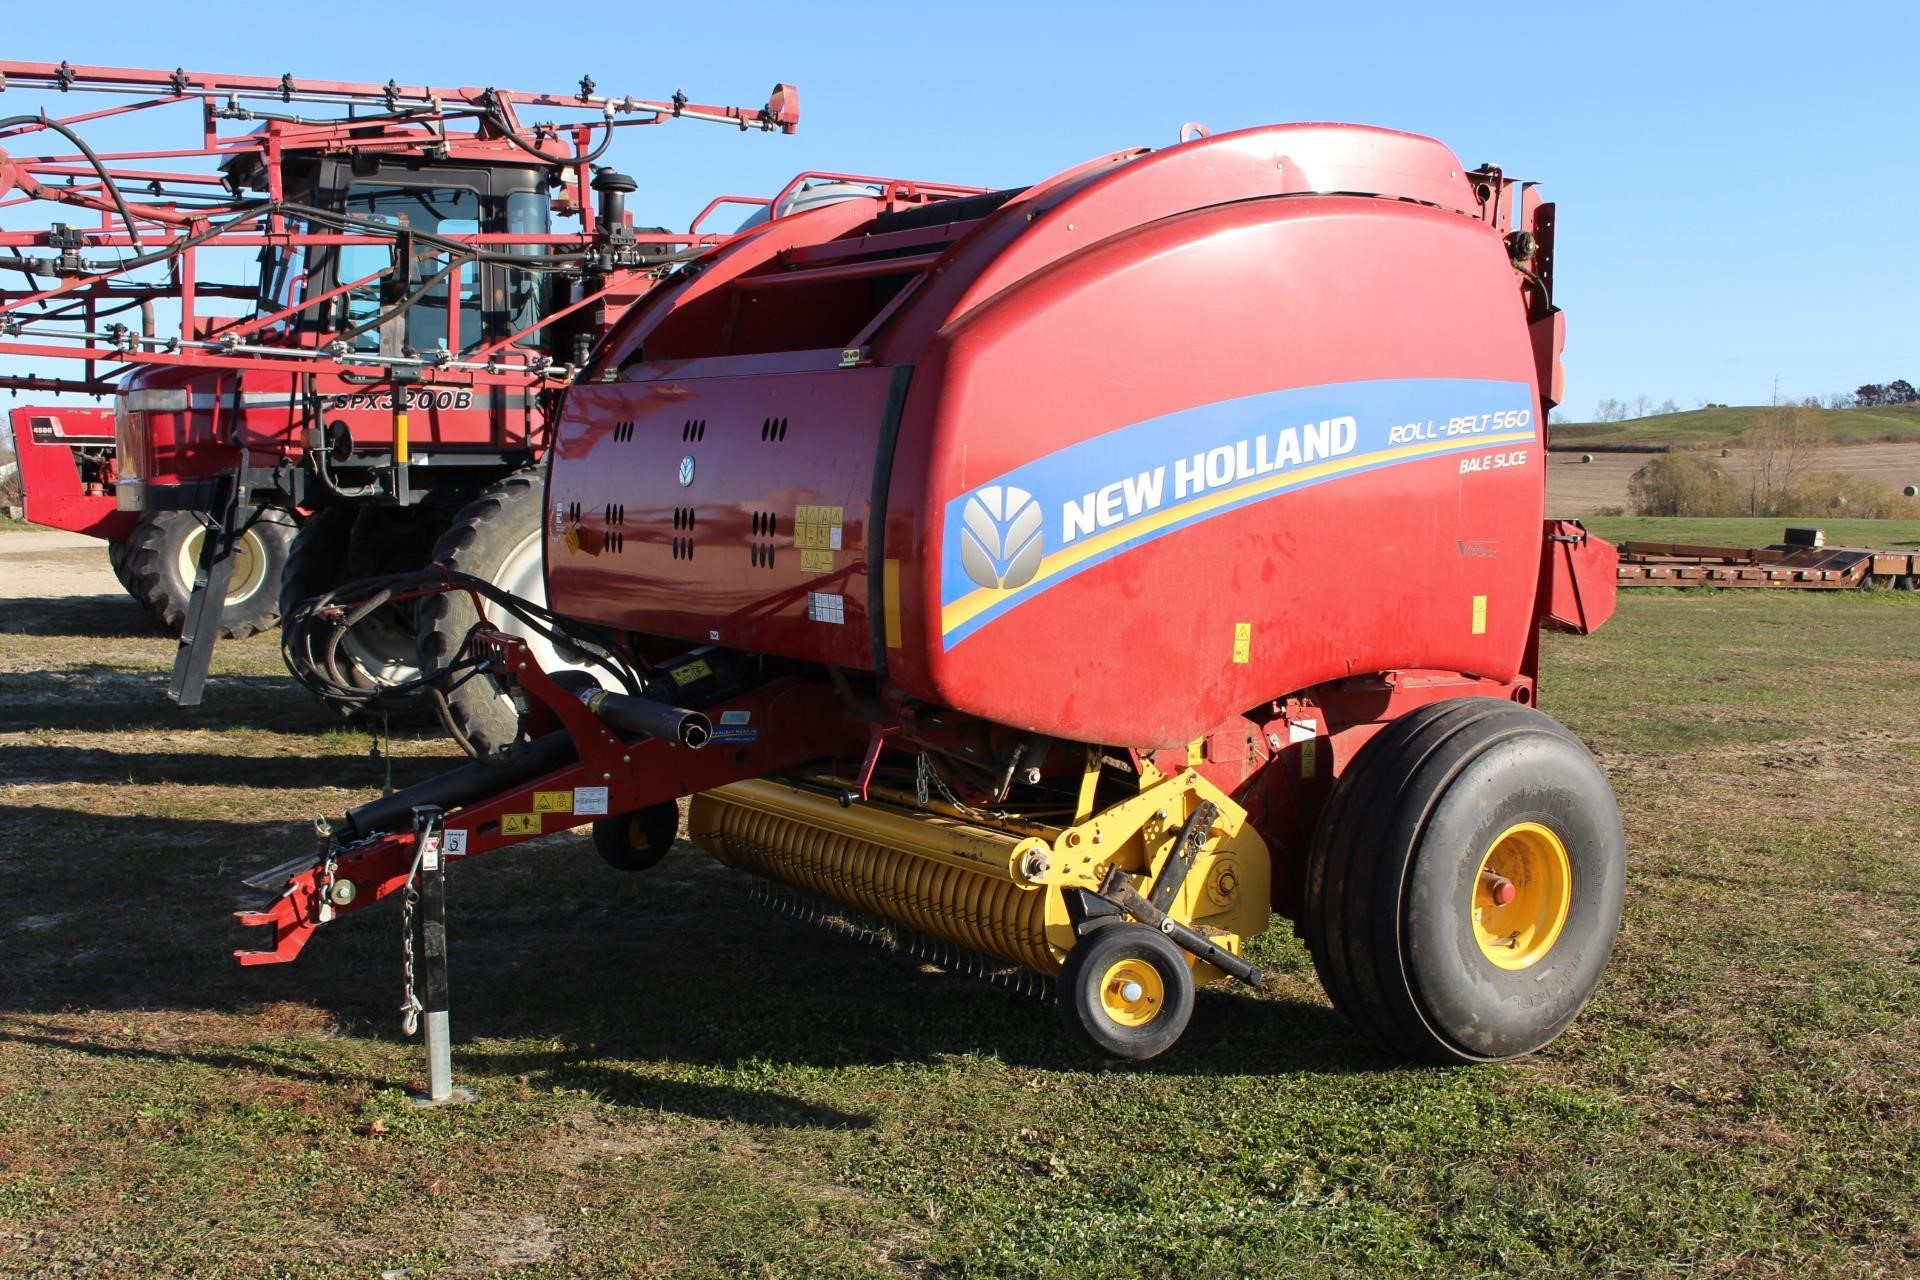 2018 New Holland Roll-Belt 560 Round Baler